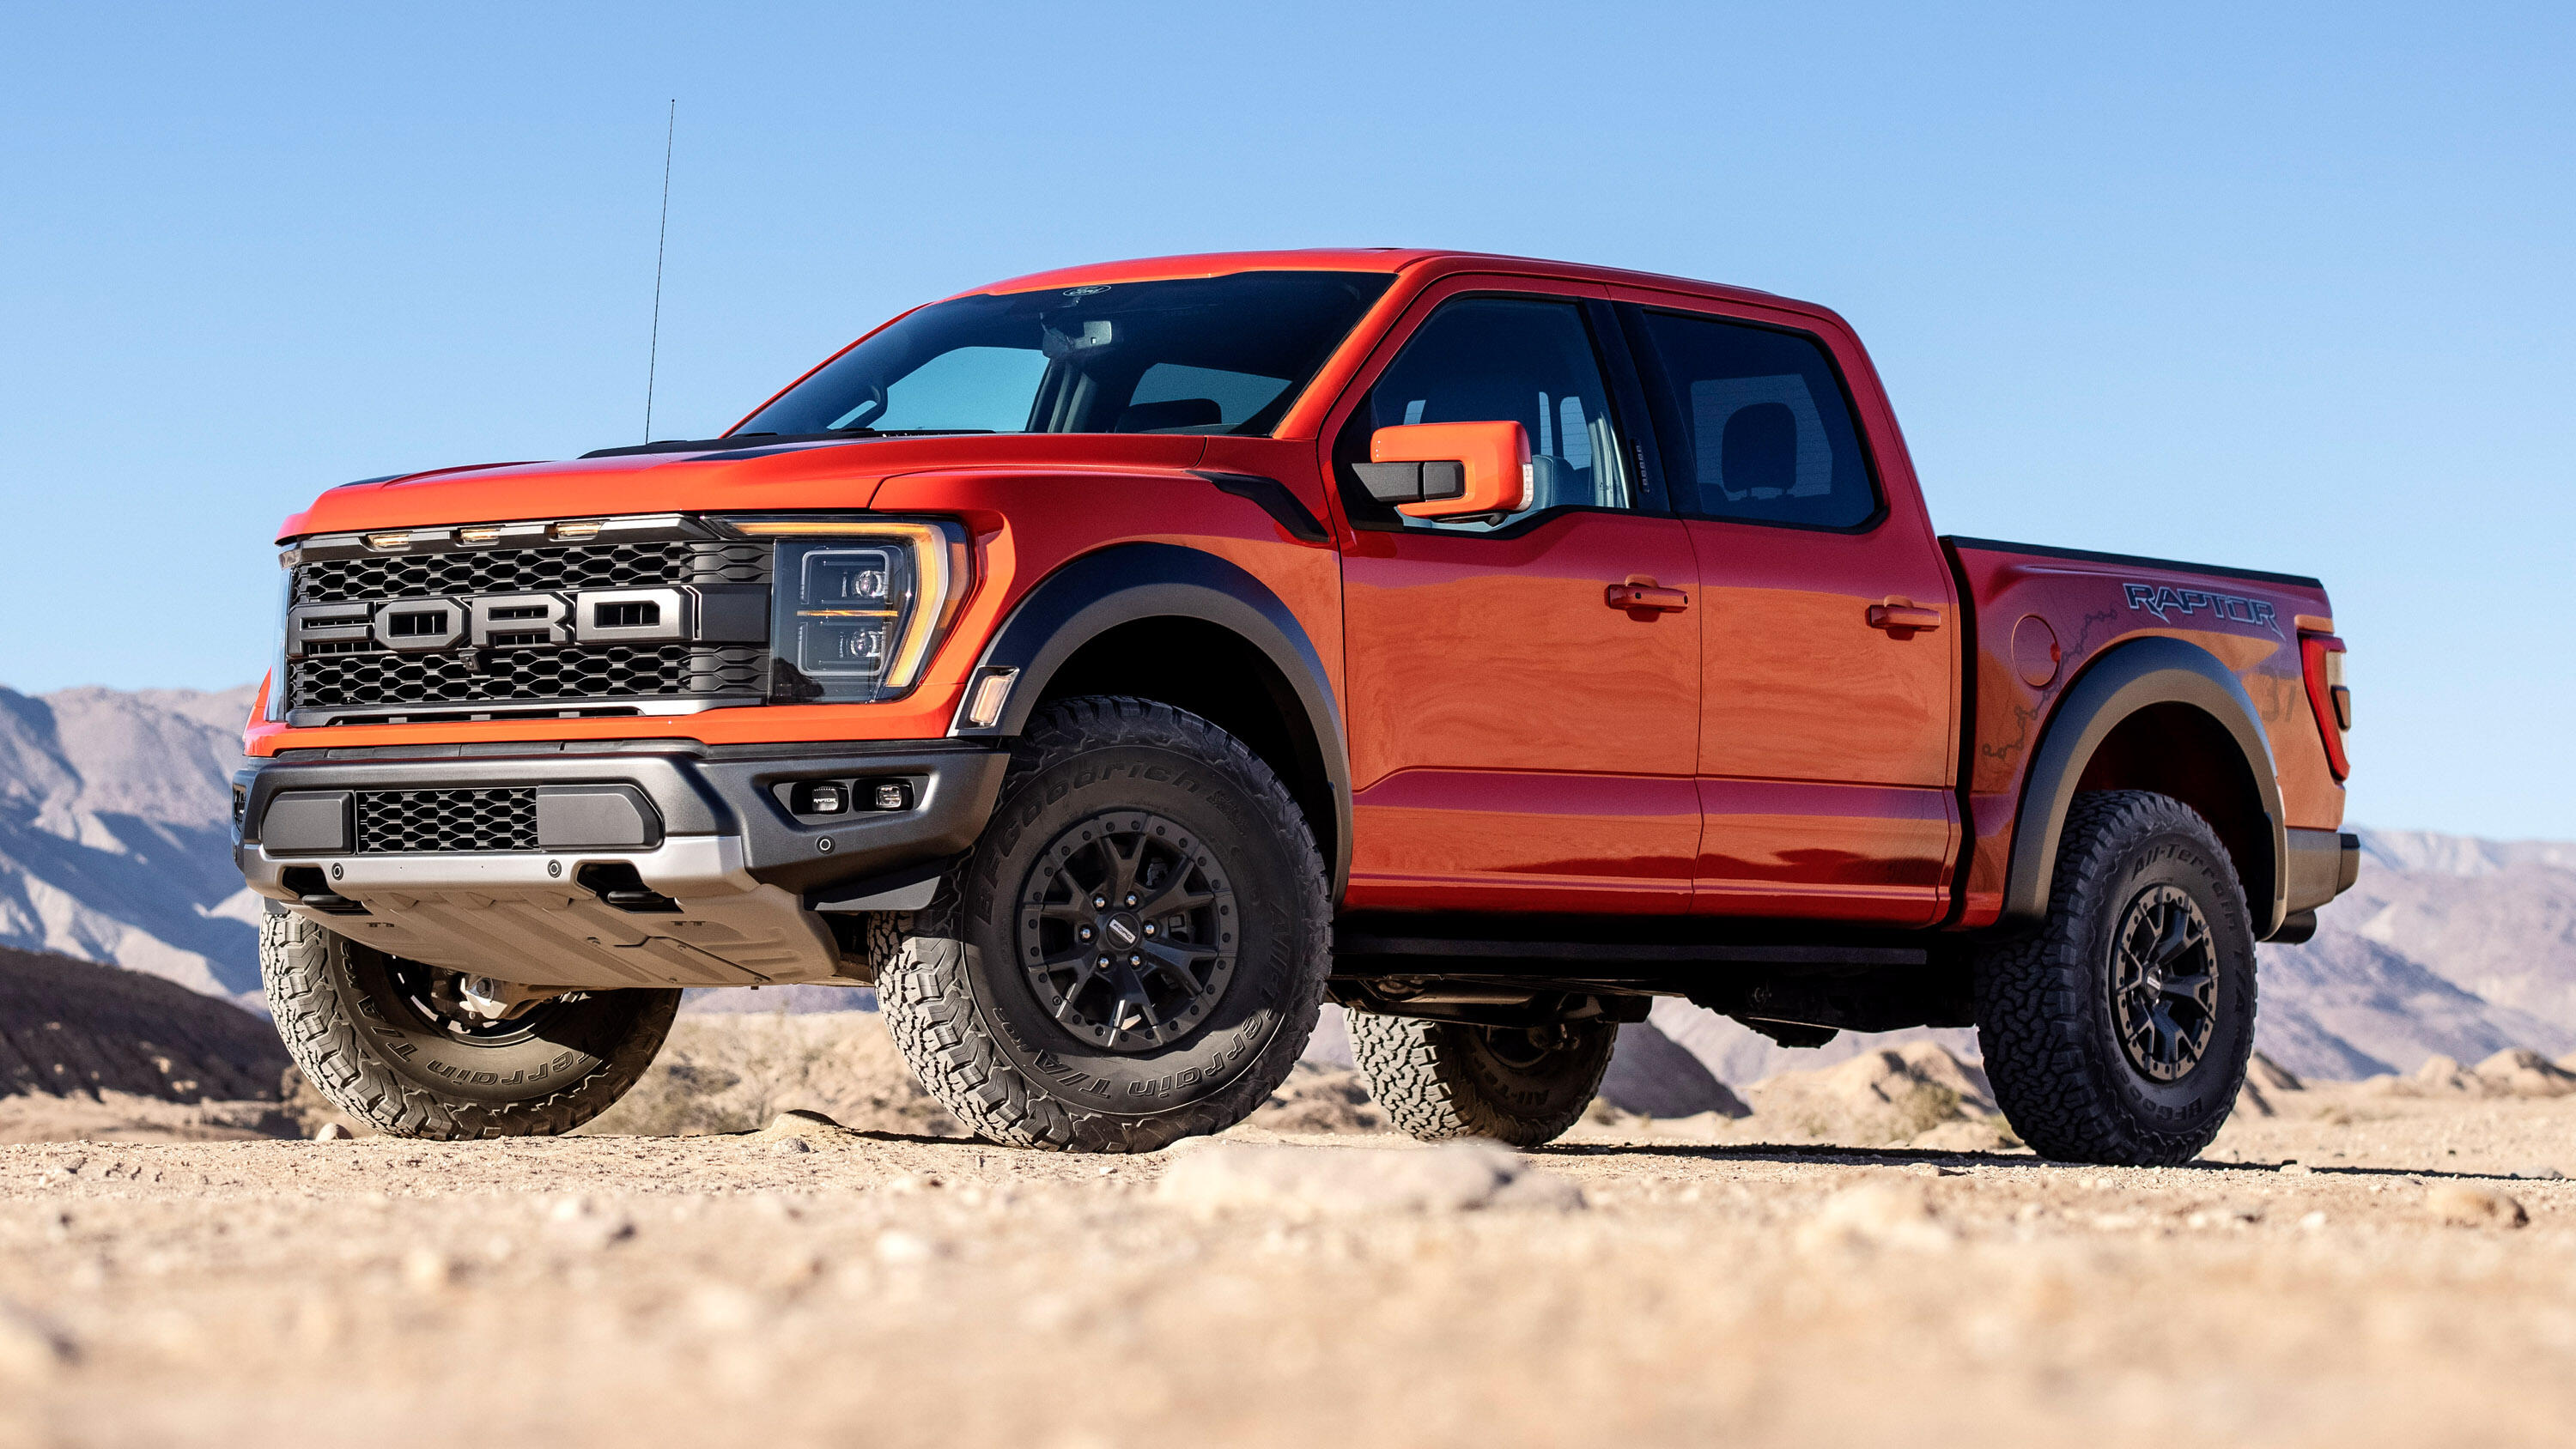 Video: The new Ford F-150 Raptor is here, and version 3.0 is louder and fiercer